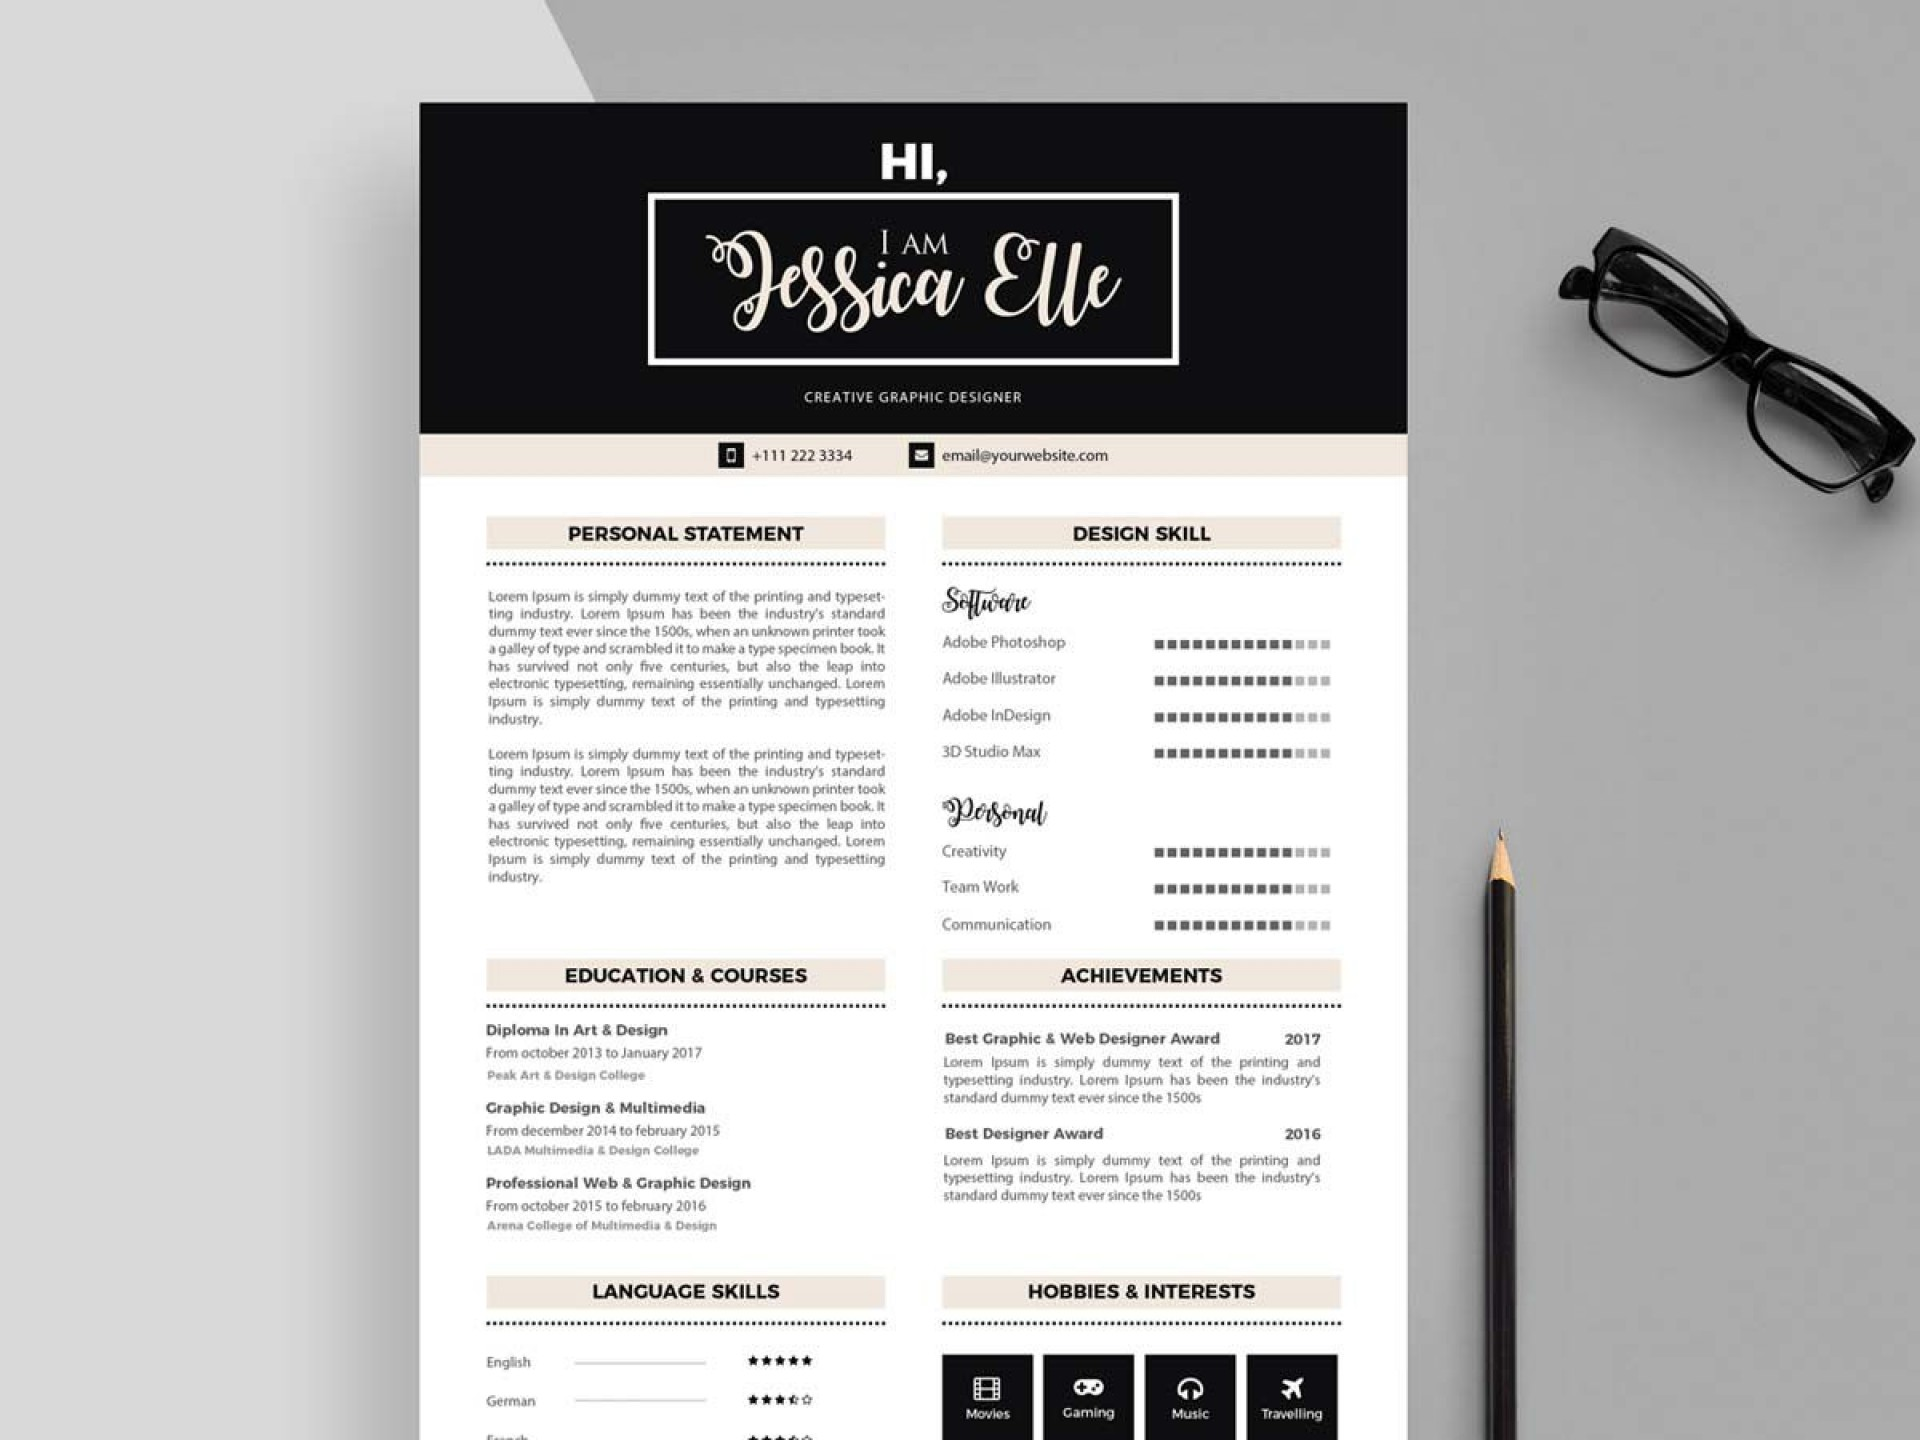 003 Magnificent Adobe Photoshop Resume Template Free Download High Definition 1920